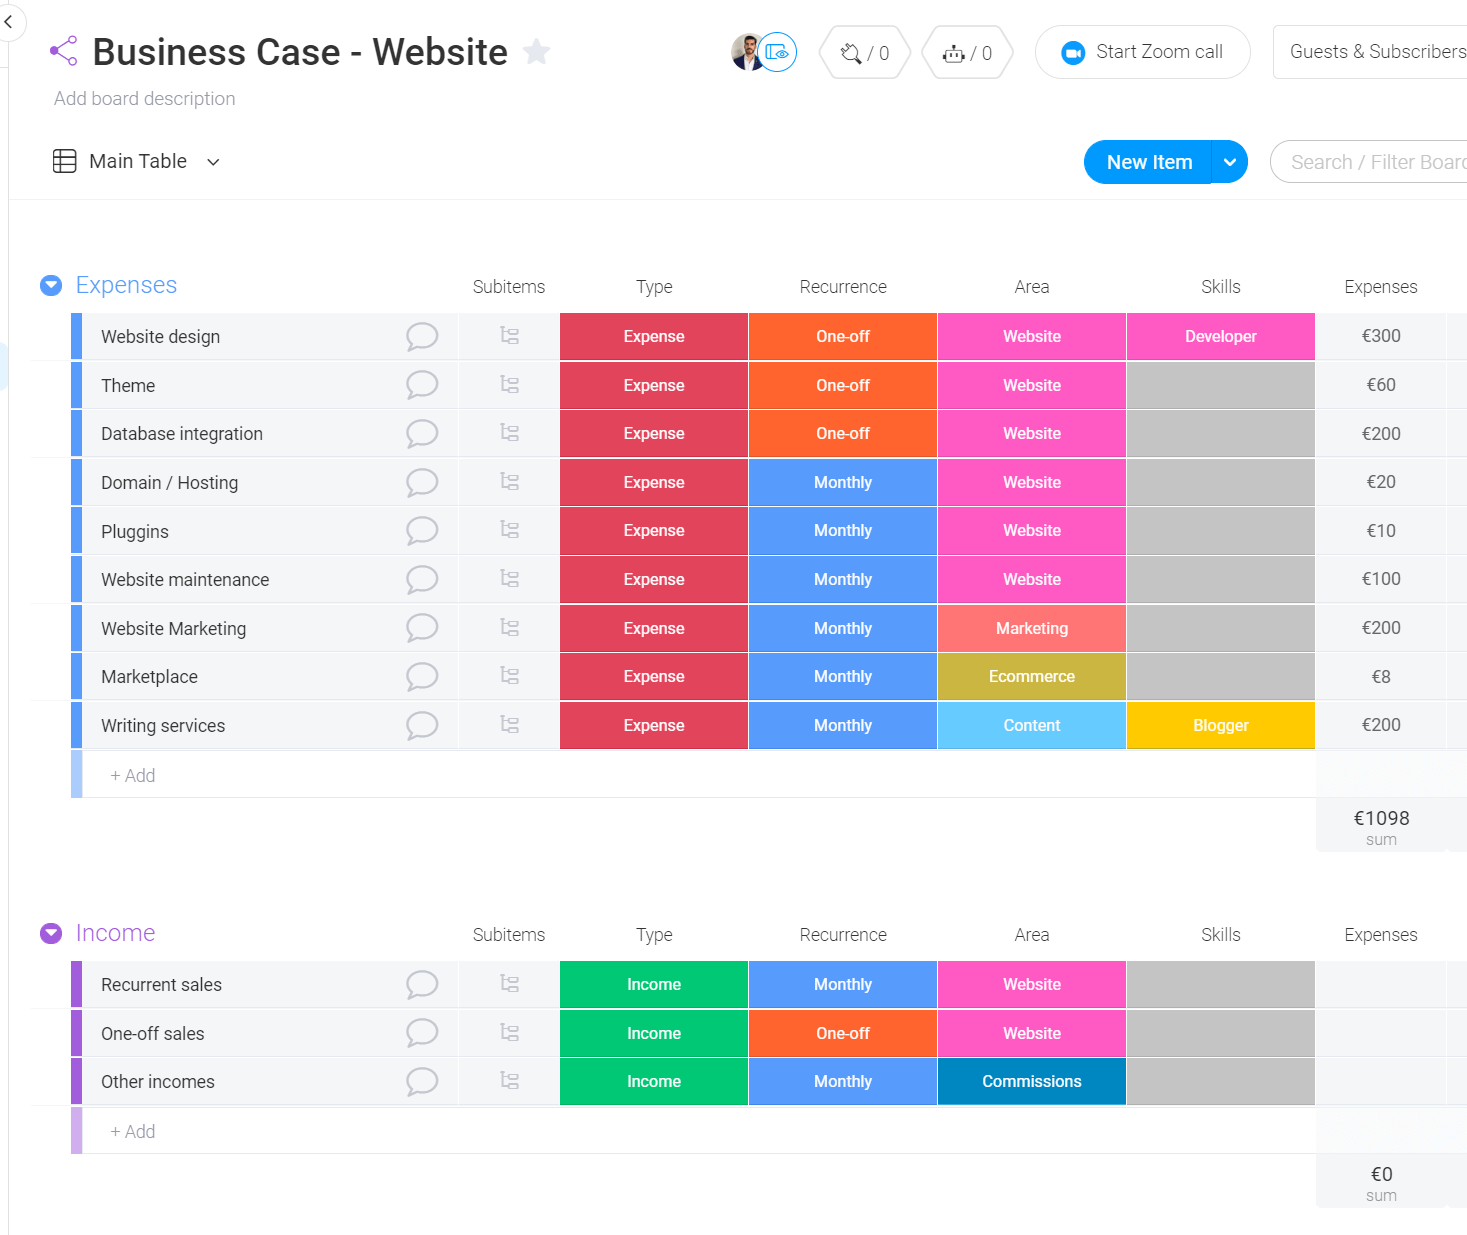 How to create a collaborative business case in monday.com - Board 1